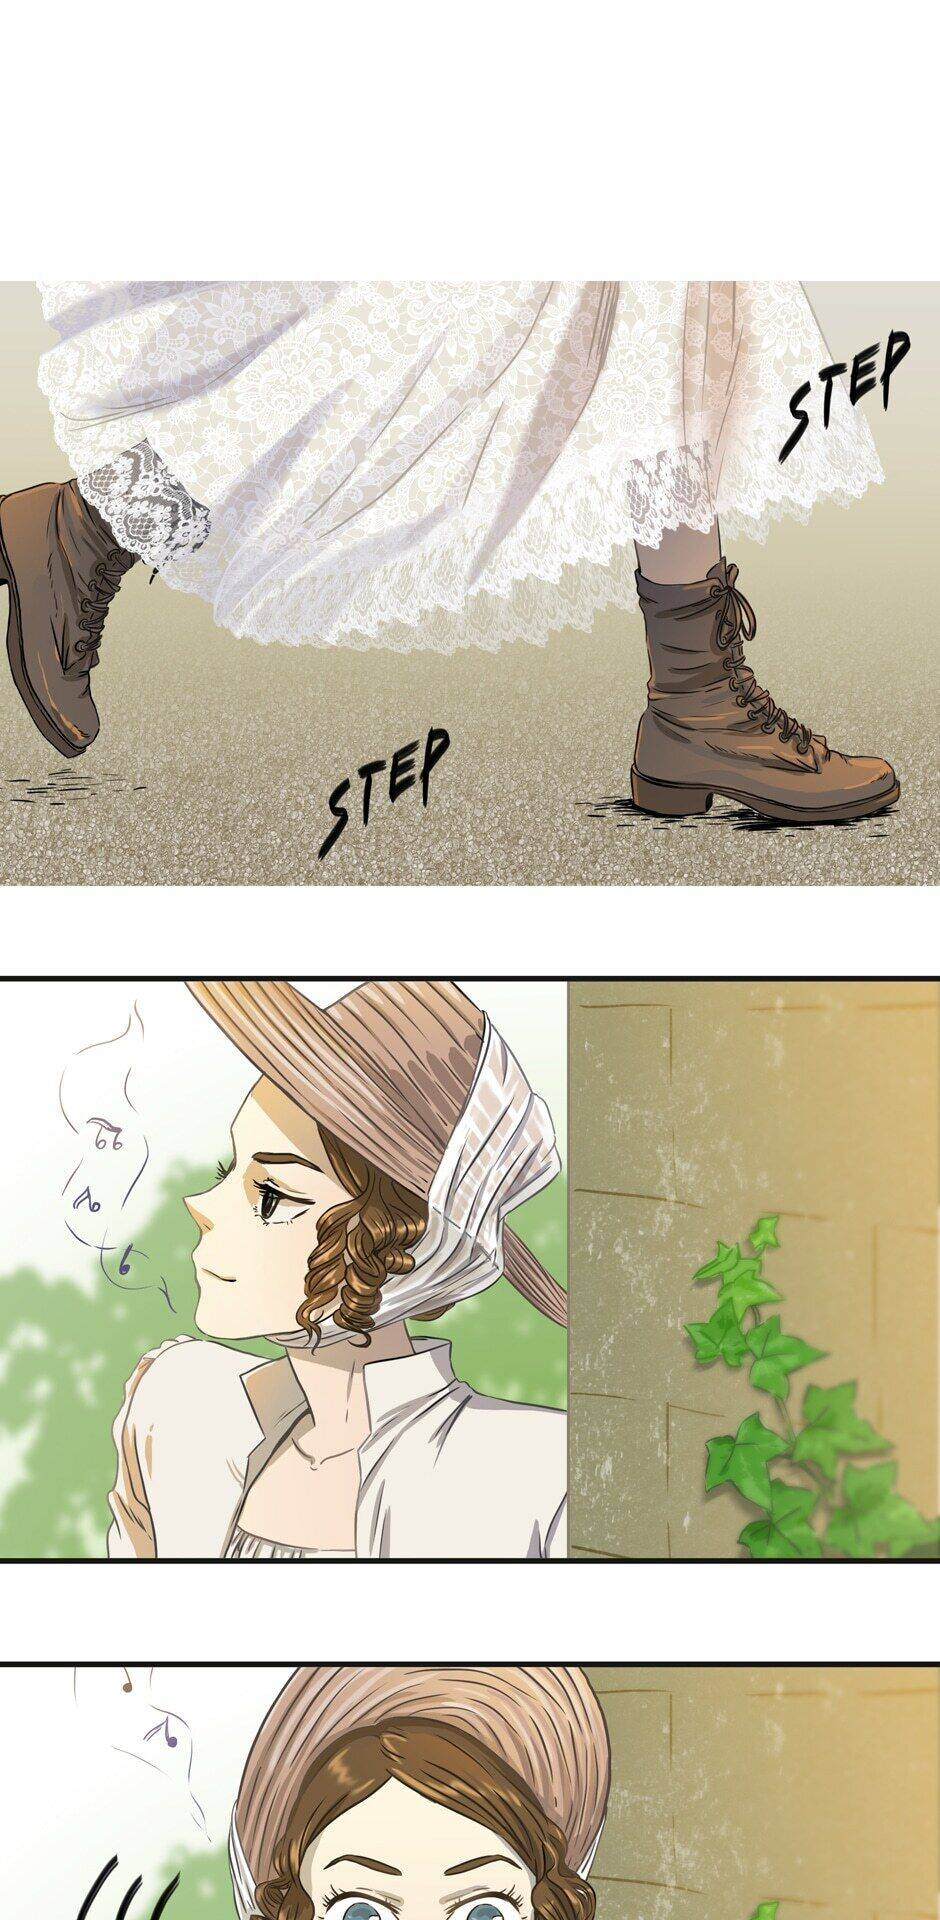 All Colors Of Snow - chapter 13 - #1